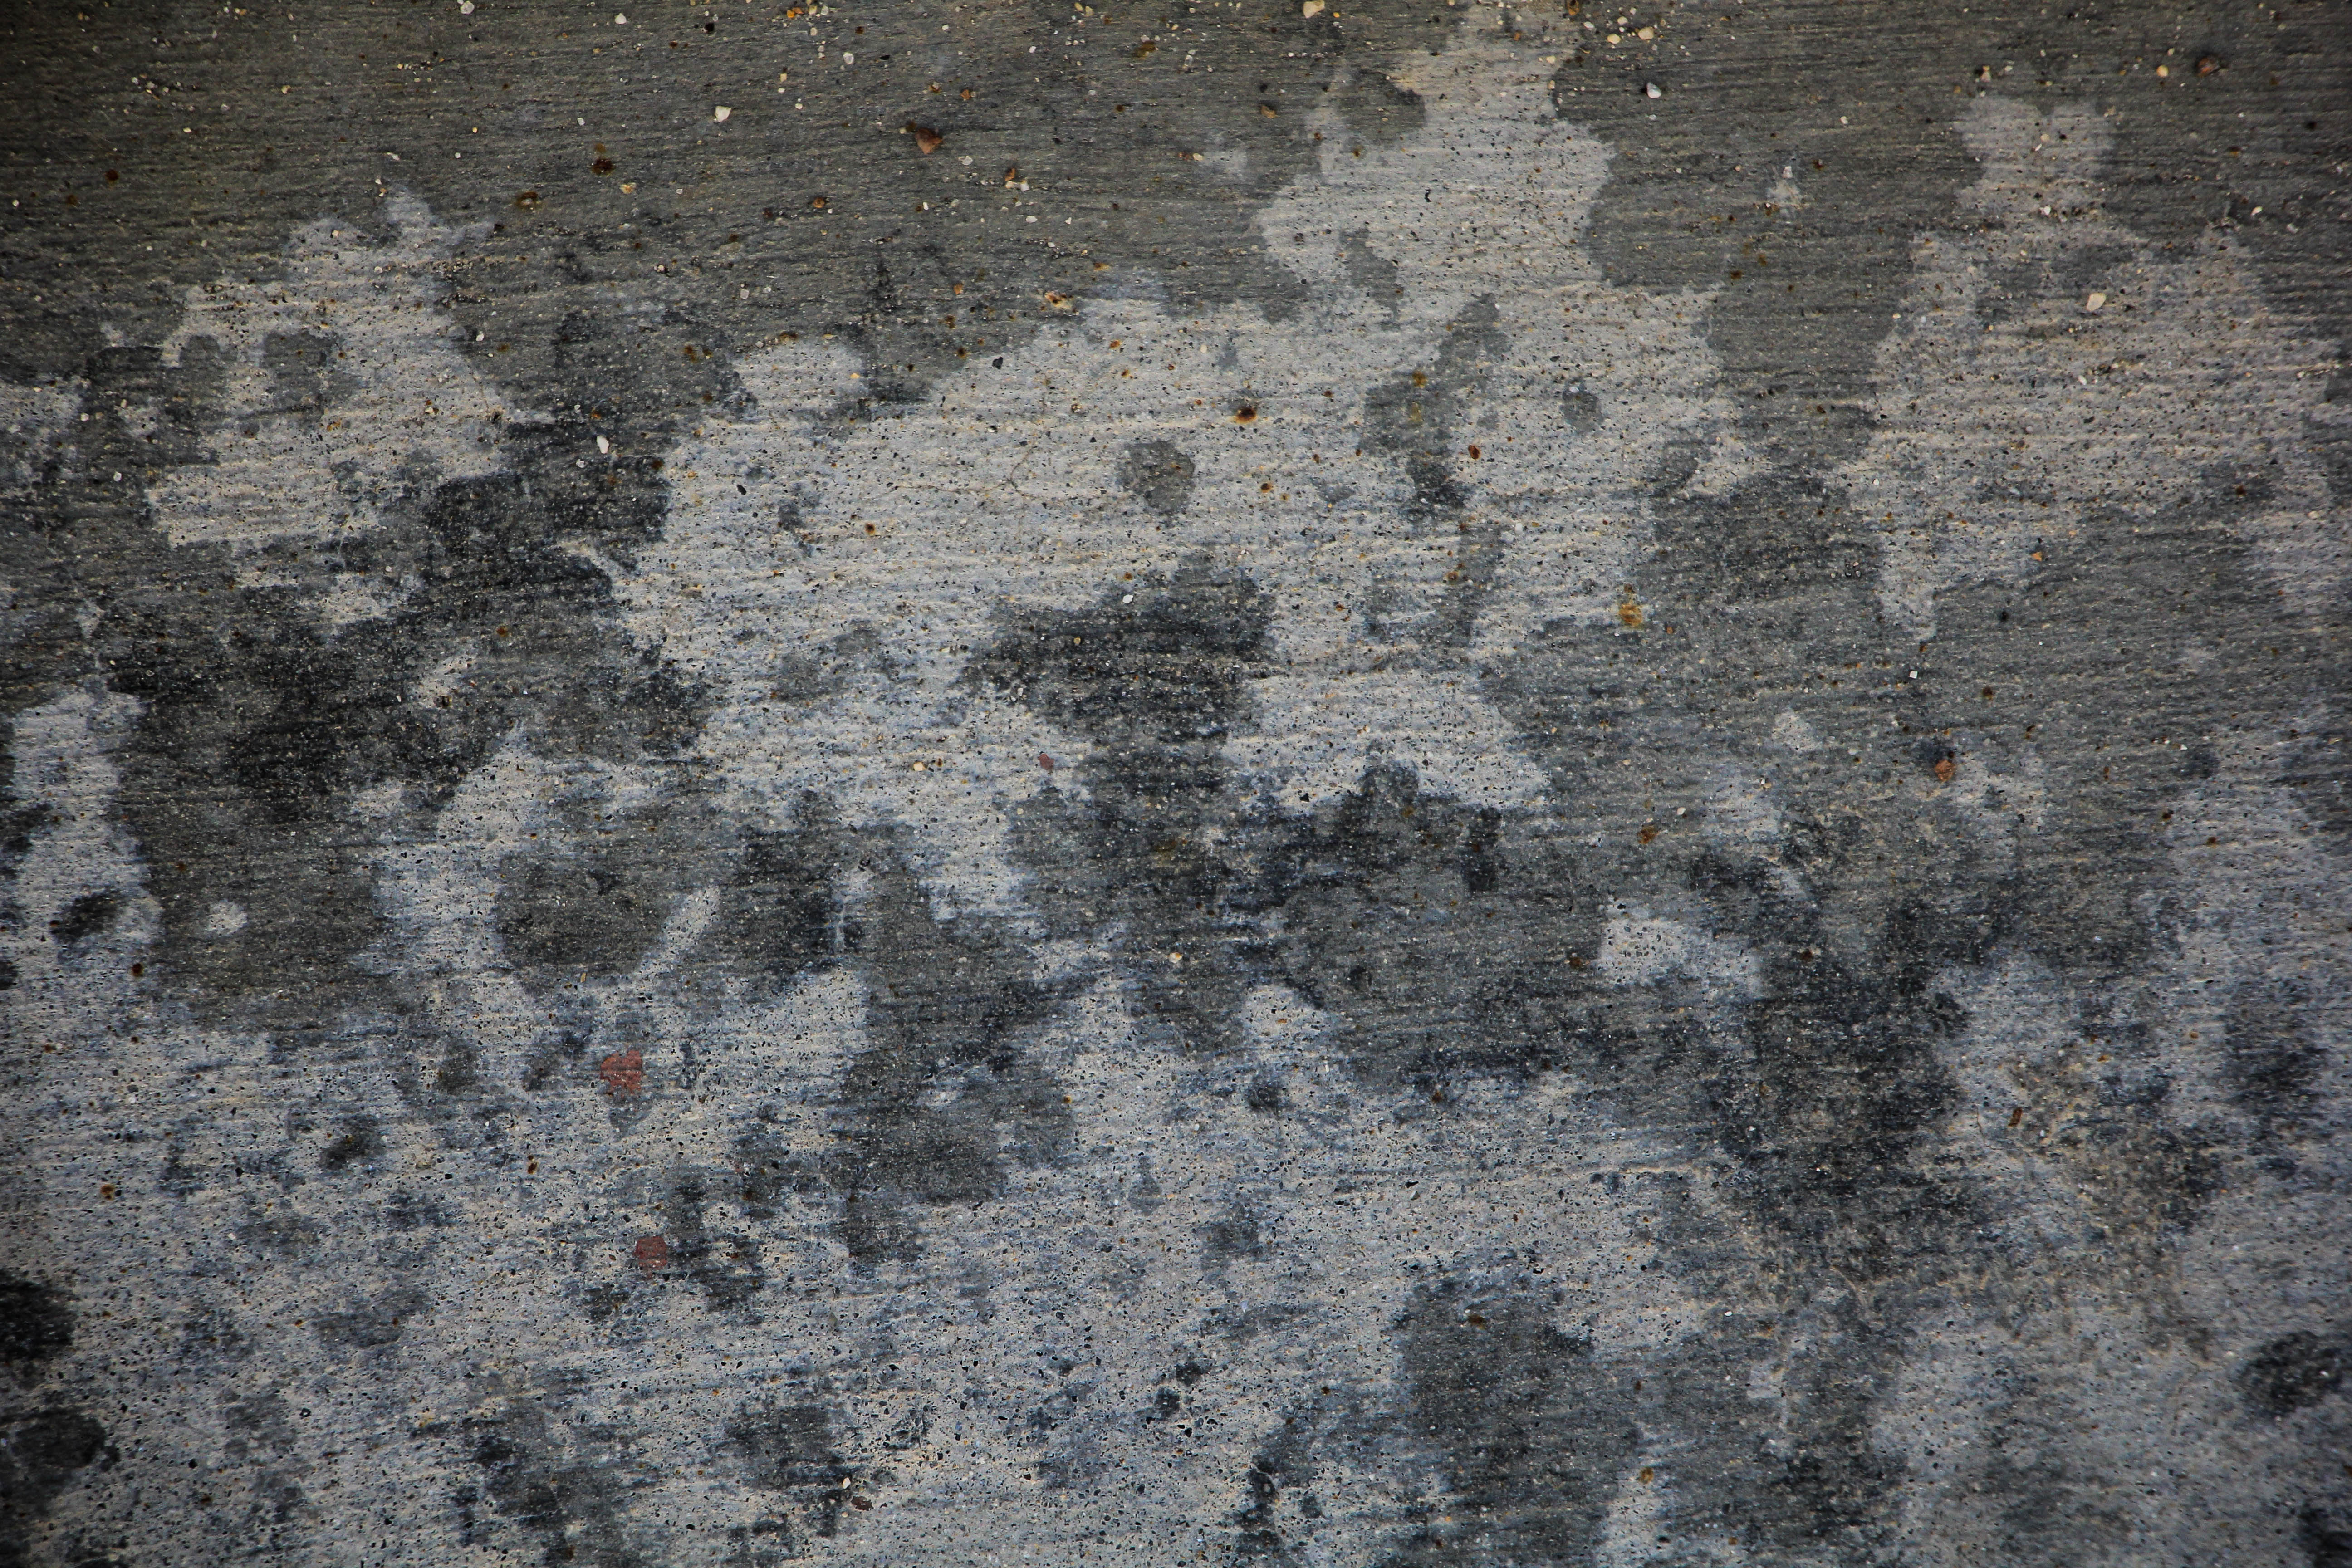 Wall Textures Concrete Texture Grunge Spotted Aged Grey White Sidewalk